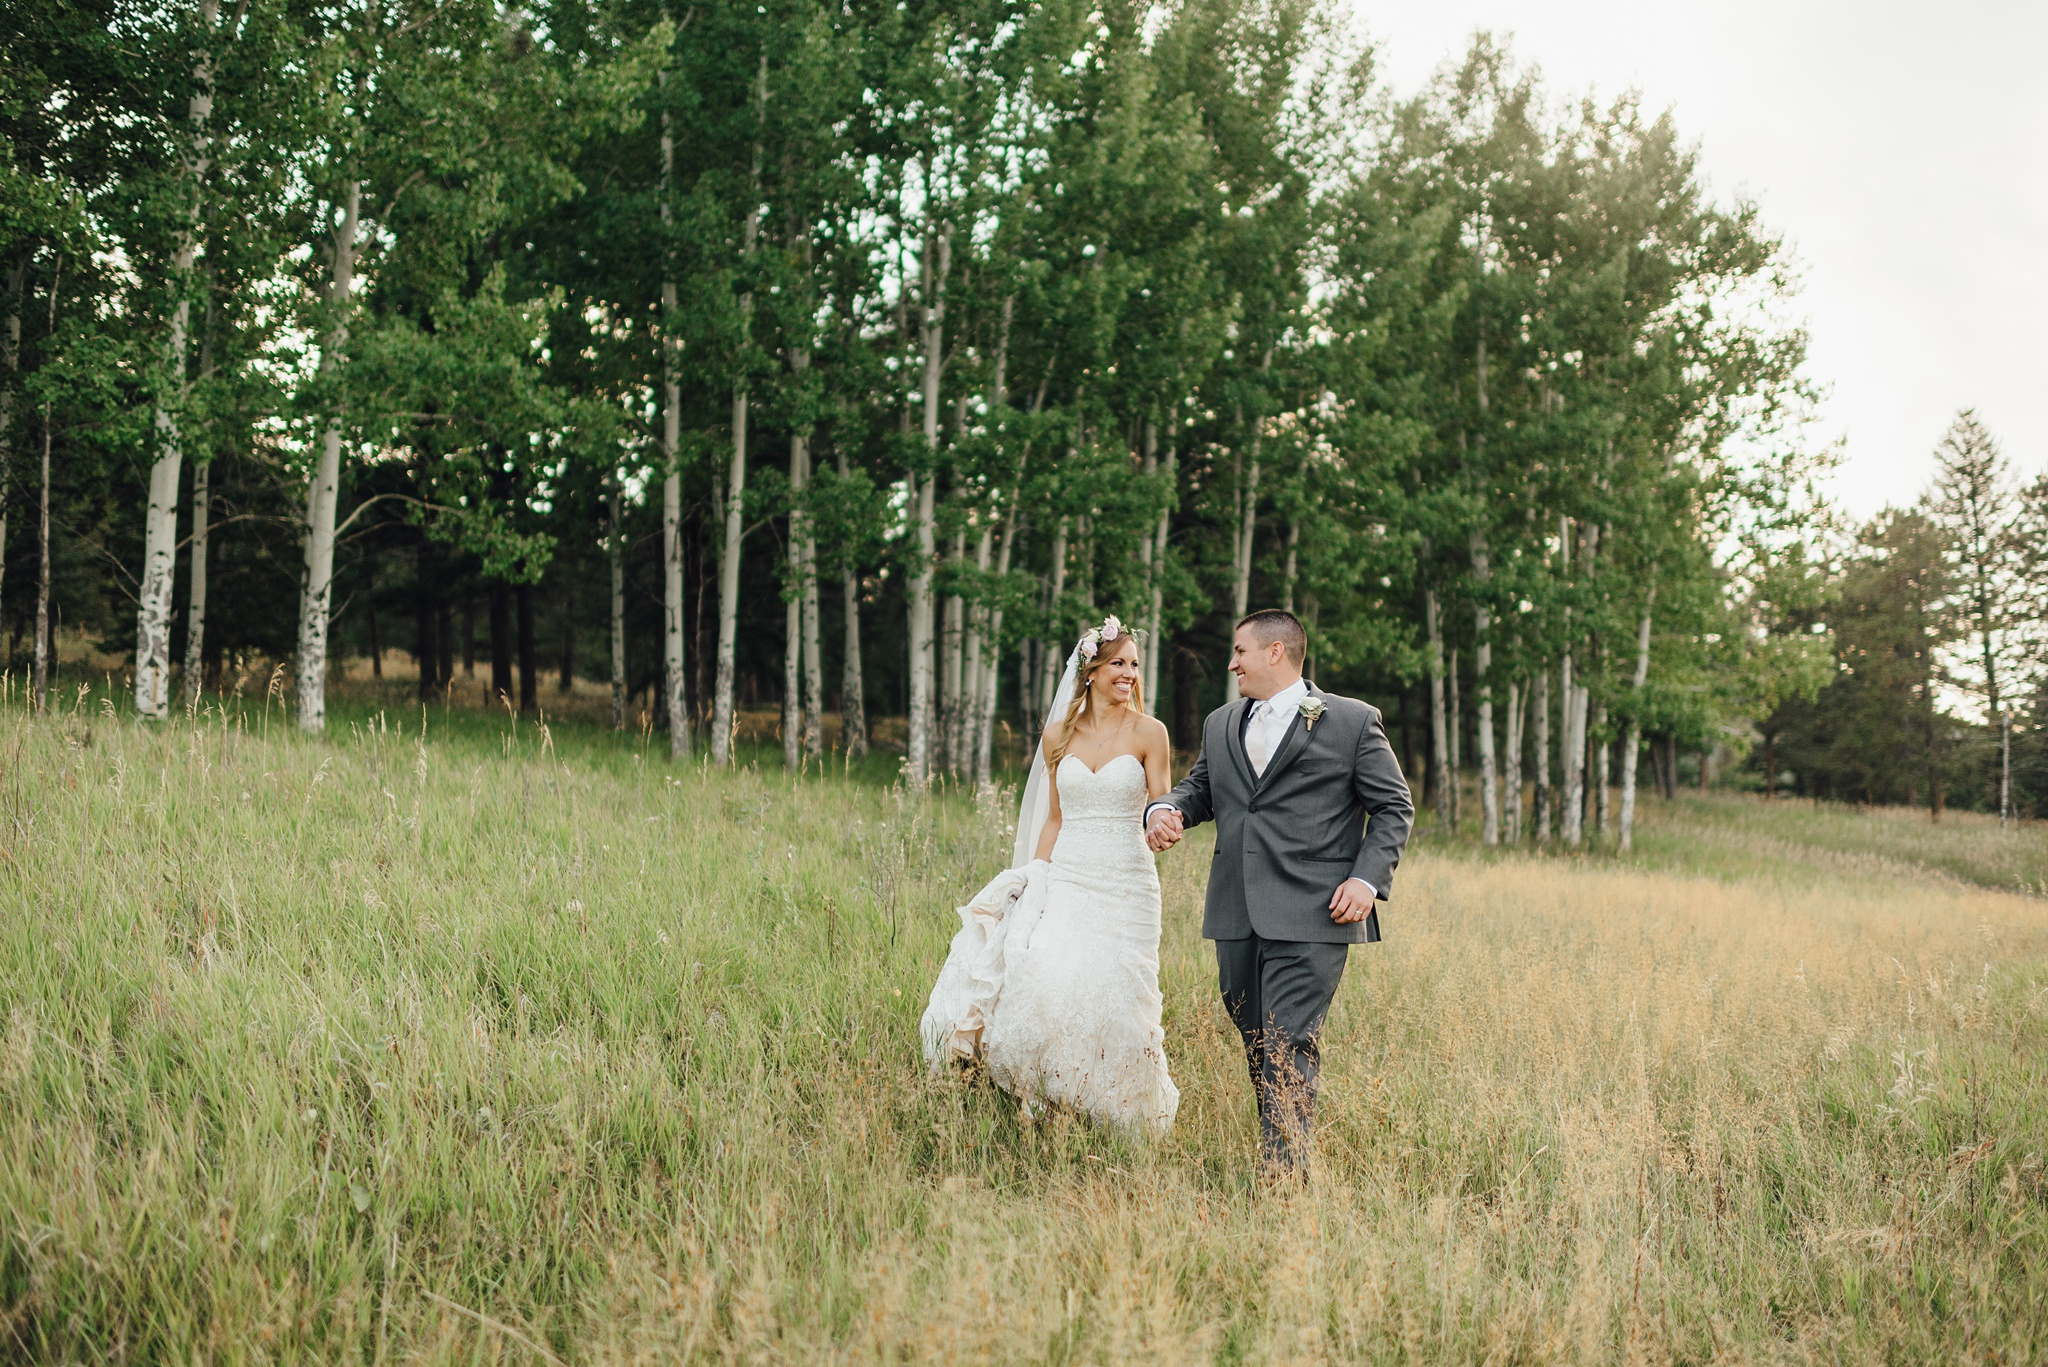 wedding at the barn at meadows at marshdale in evergreen, colorado